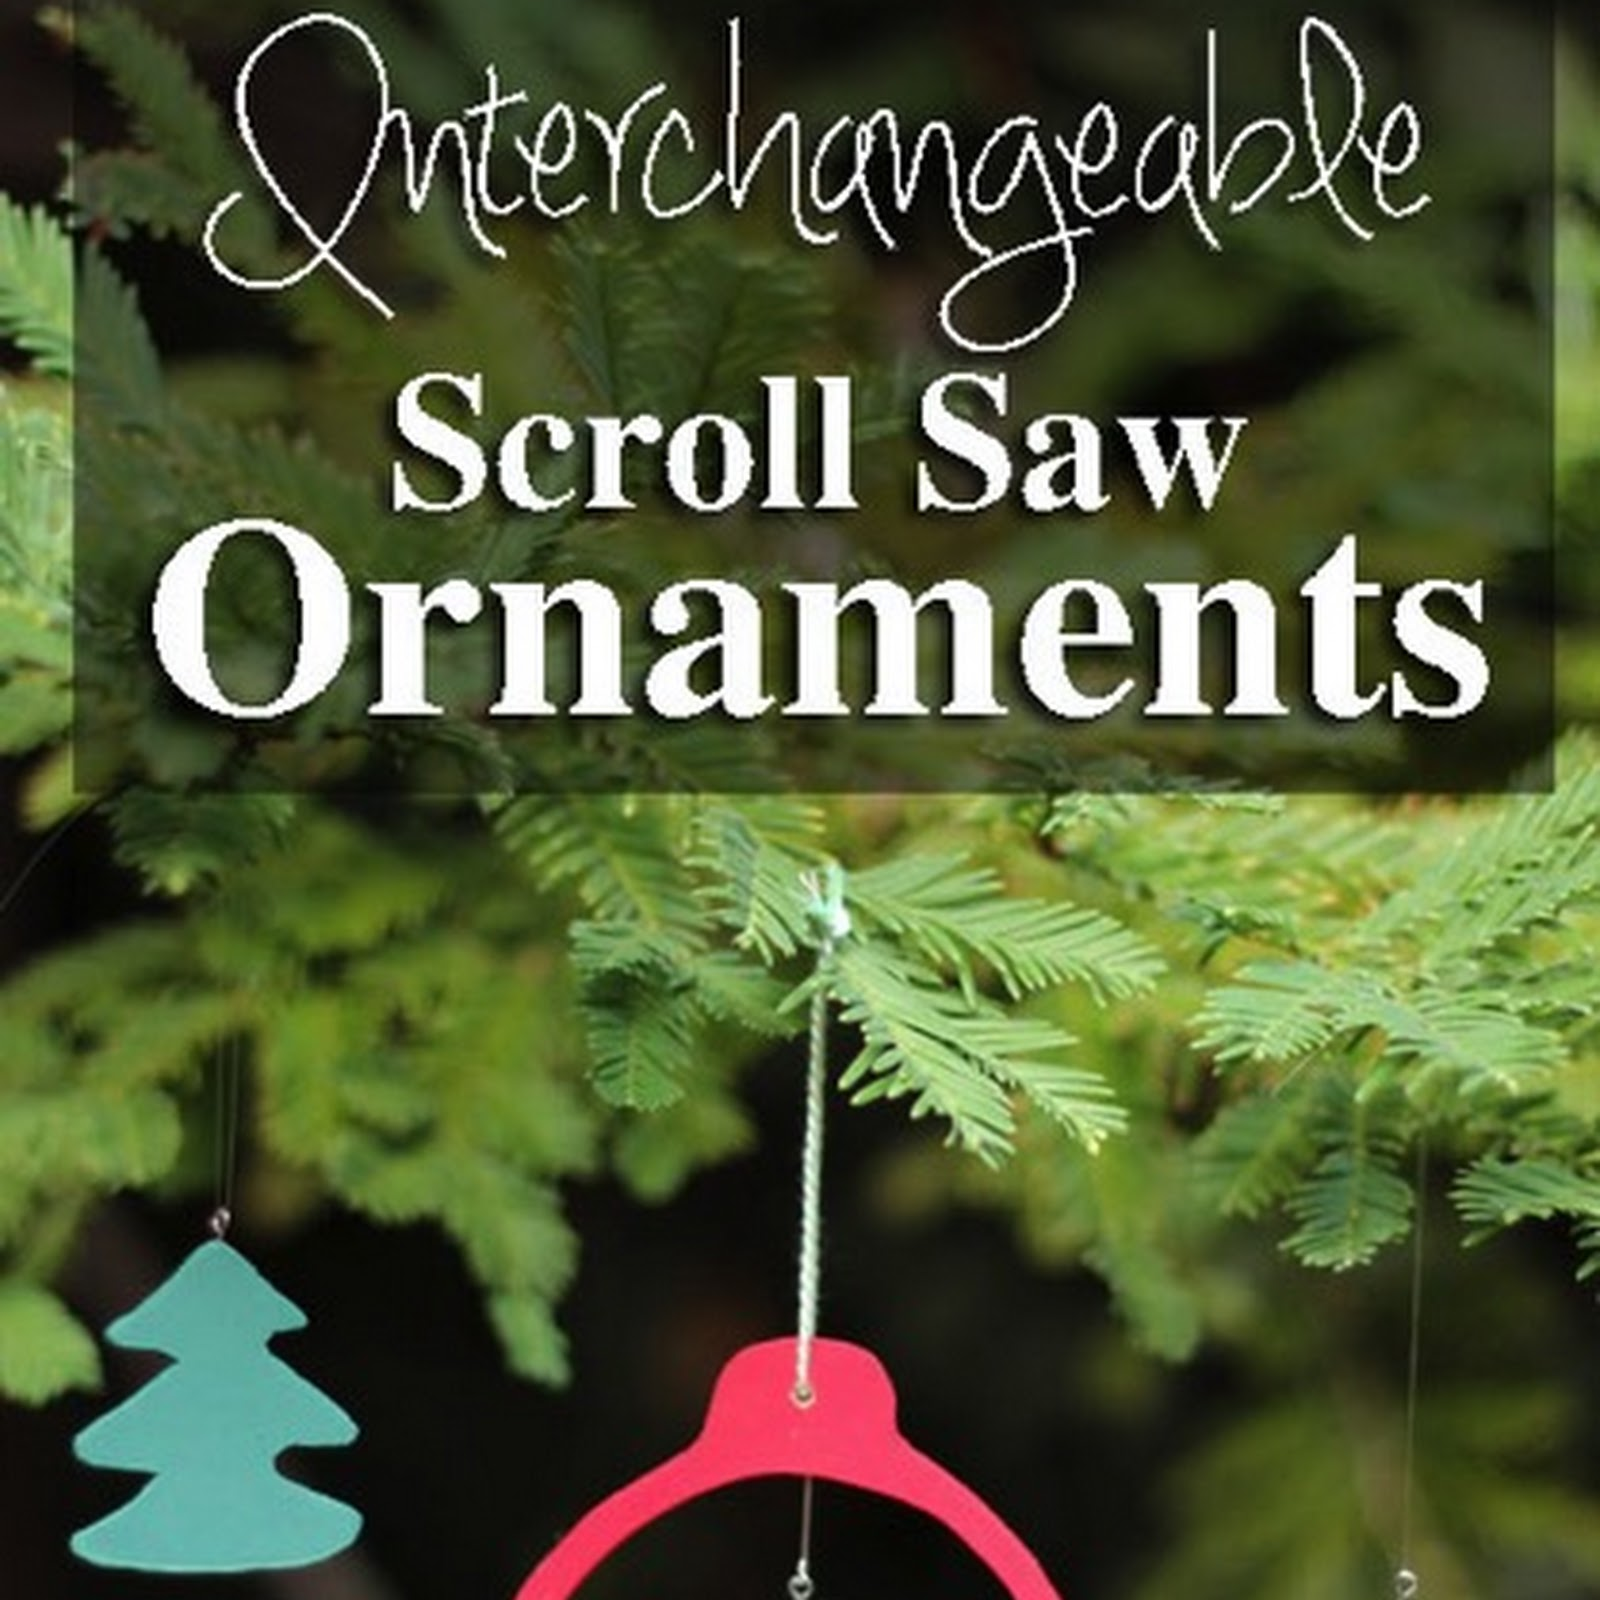 Customizable Wooden Scroll Saw Ornaments